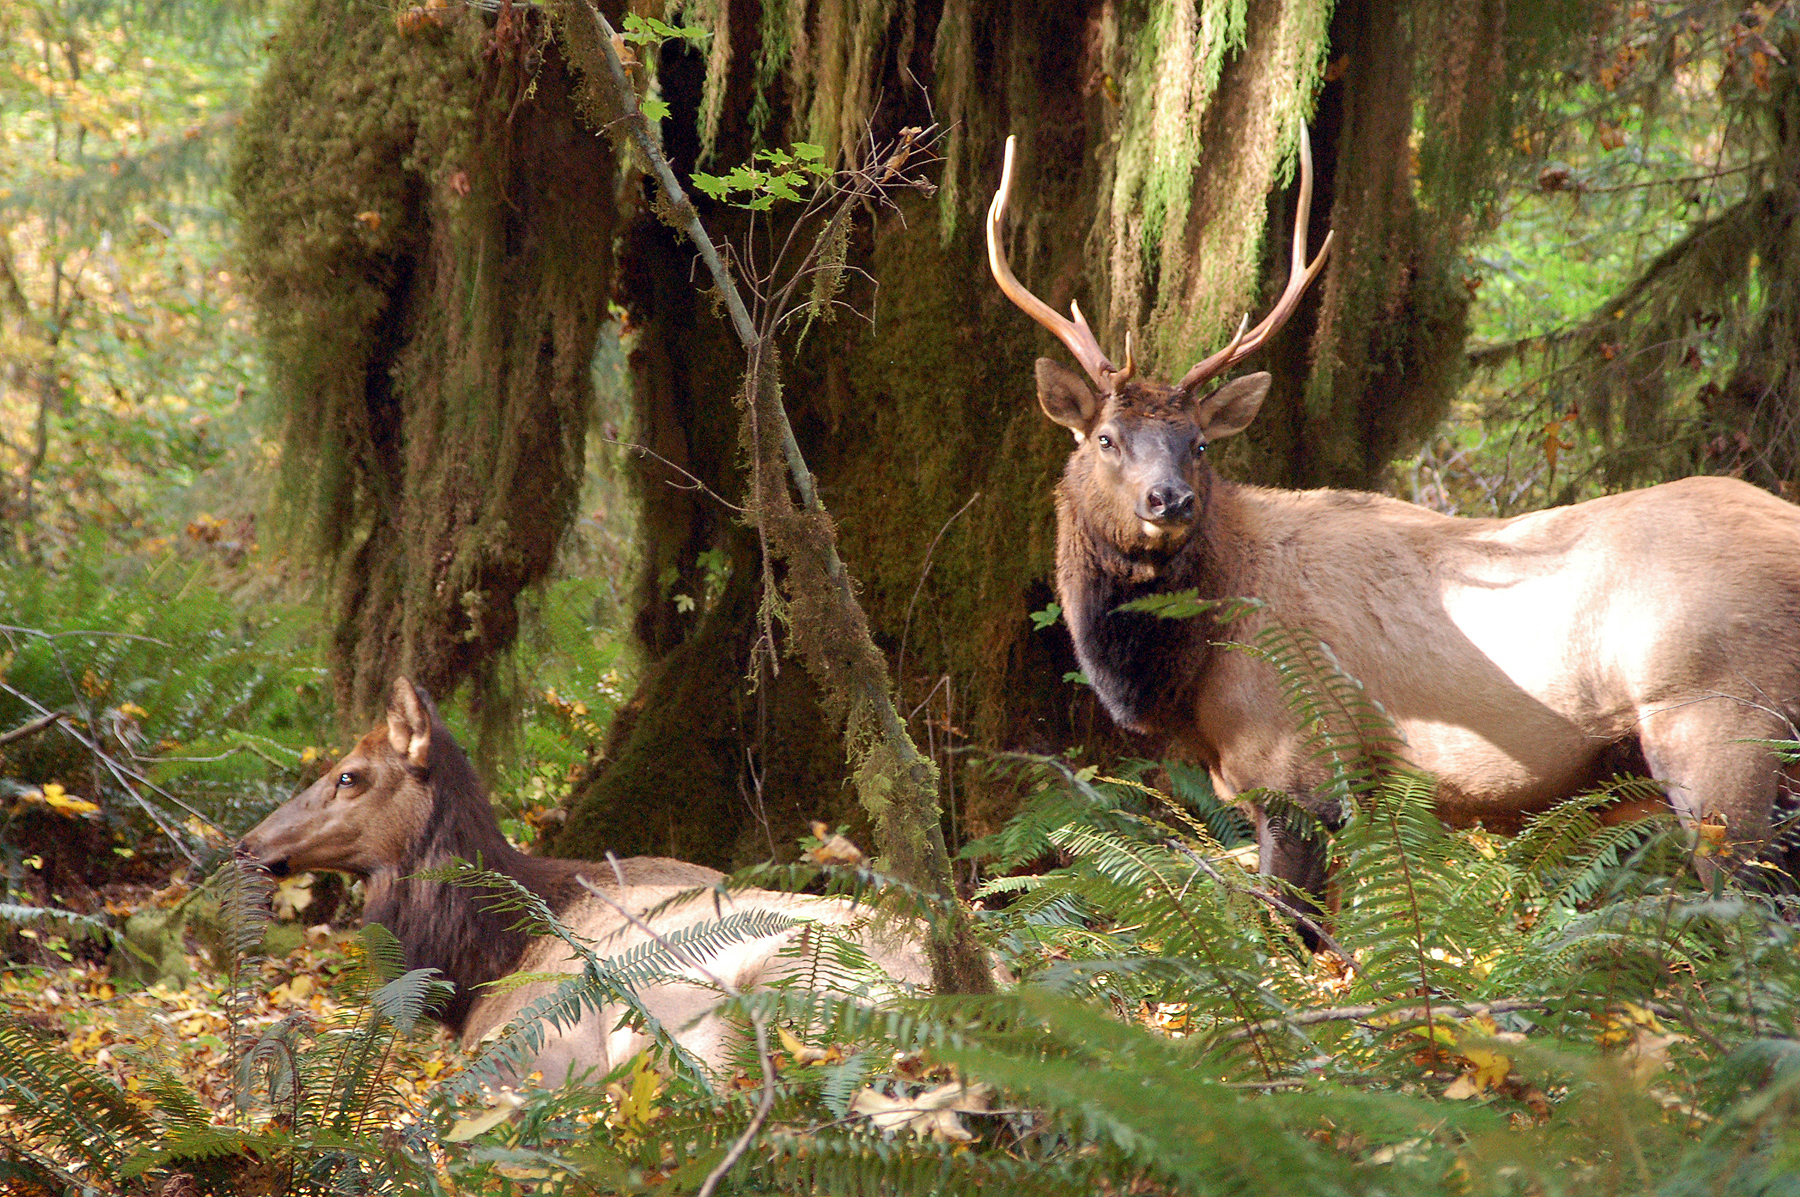 Jungle Wallpaper With Animals Suggested Reading Olympic National Park U S National